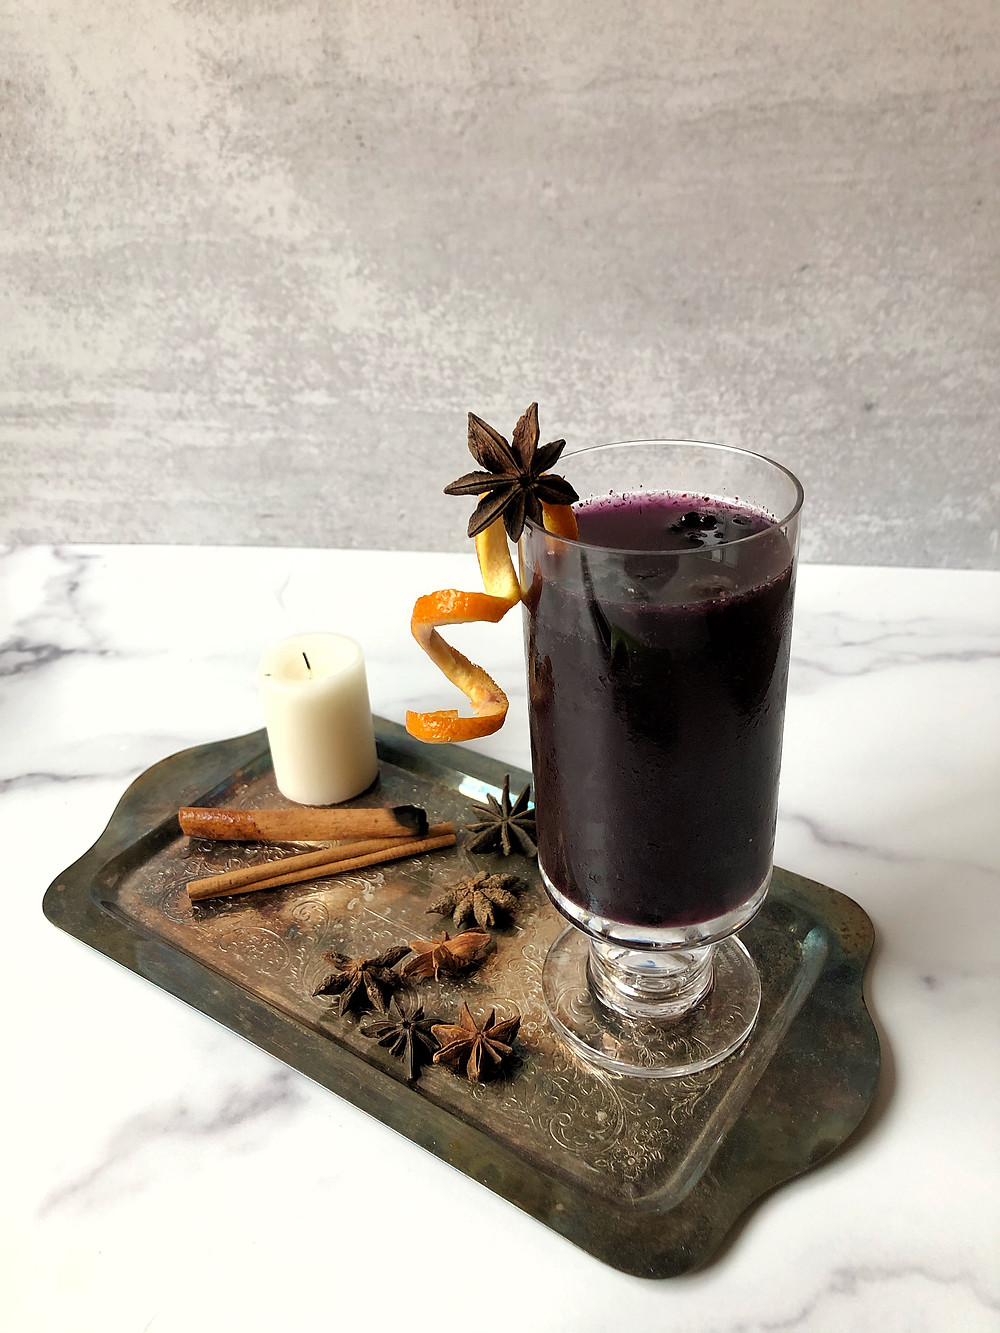 The Hocus Pocus Punch is a dark berry non-alcoholic punch perfect for your Halloween party.